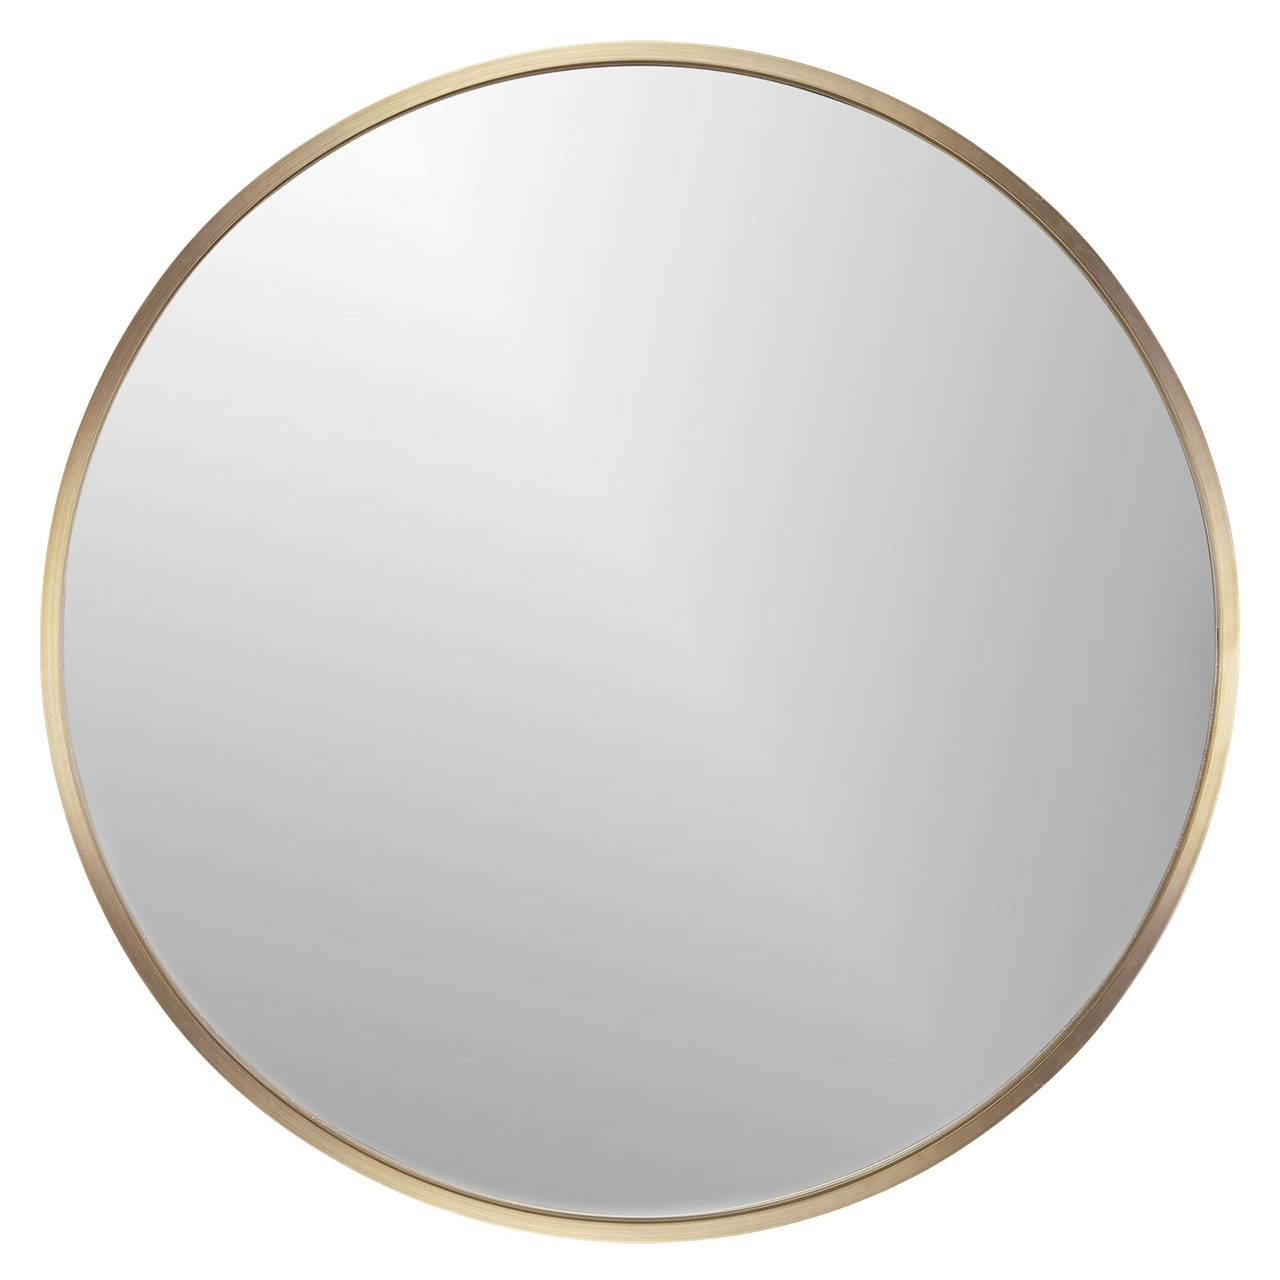 Large Round Wall Mirror Metal inside Large Round Metal Mirrors (Image 8 of 15)